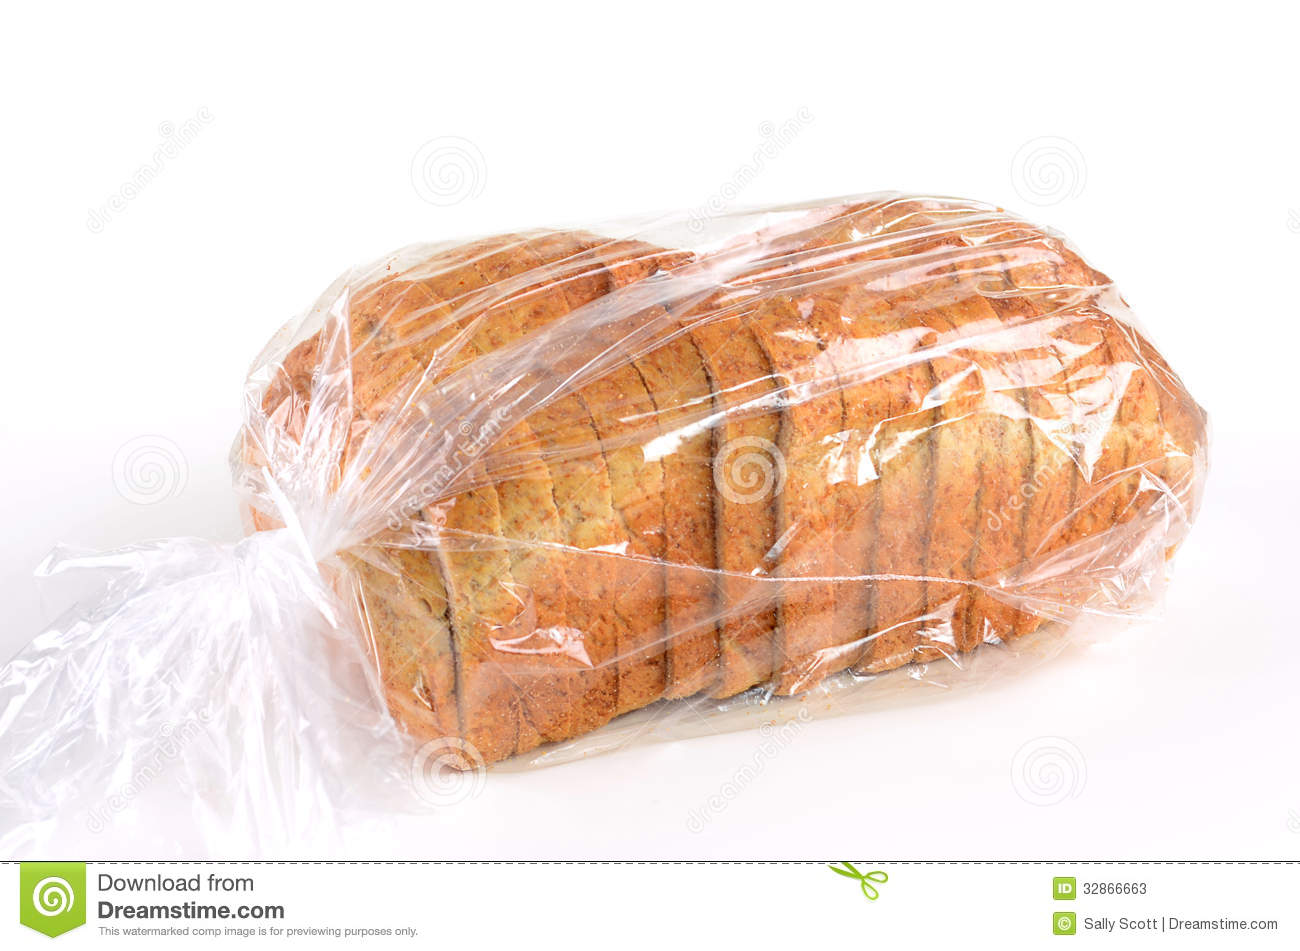 Whole Grain Sliced Bread In Plastic Bag Stock Photos   Image  32866663